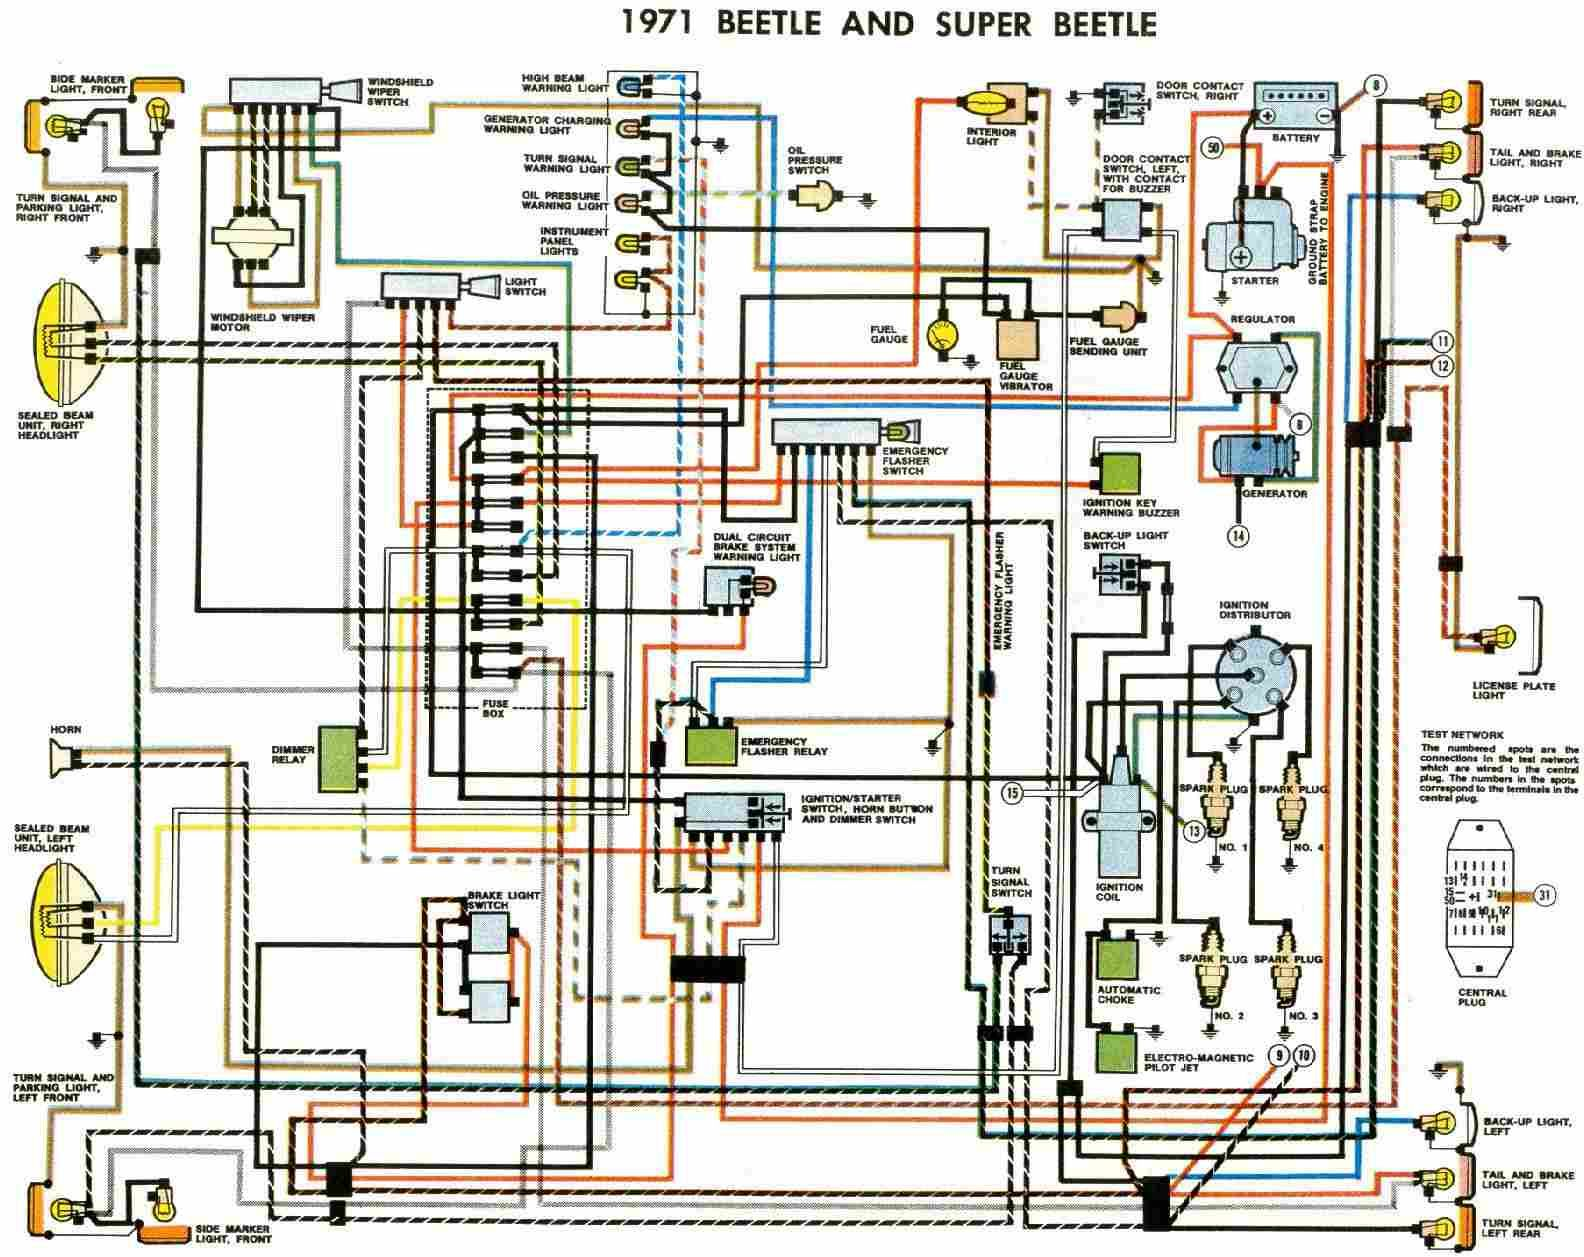 6379f2a777a0eb1b27fdba46670ceb6a how to read vw wiring diagrams basic motorcycle wiring diagram how to read automotive wiring diagrams pdf at n-0.co